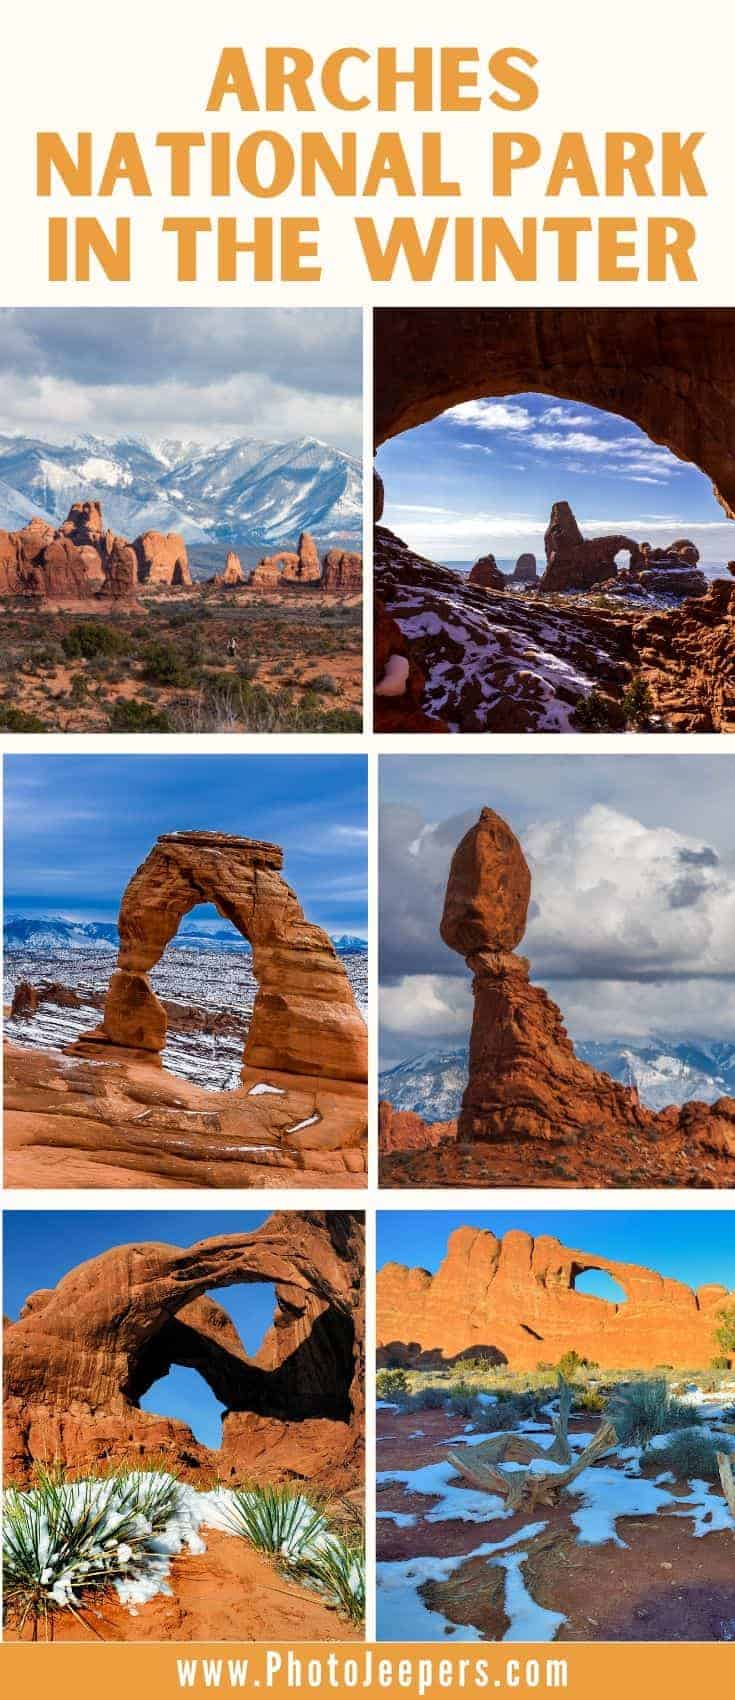 Use this guide to help you plan an amazing trip full of outdoor winter adventures at Arches National Park | Planning a Winter Trip to Arches | What to Pack When Visiting Arches in the Winter | 5 Reasons to Visit Arches in the Winter | Where to Stay in Arches During the Winter #nationalparks #archesnationalpark #wintertravel #photojeepers